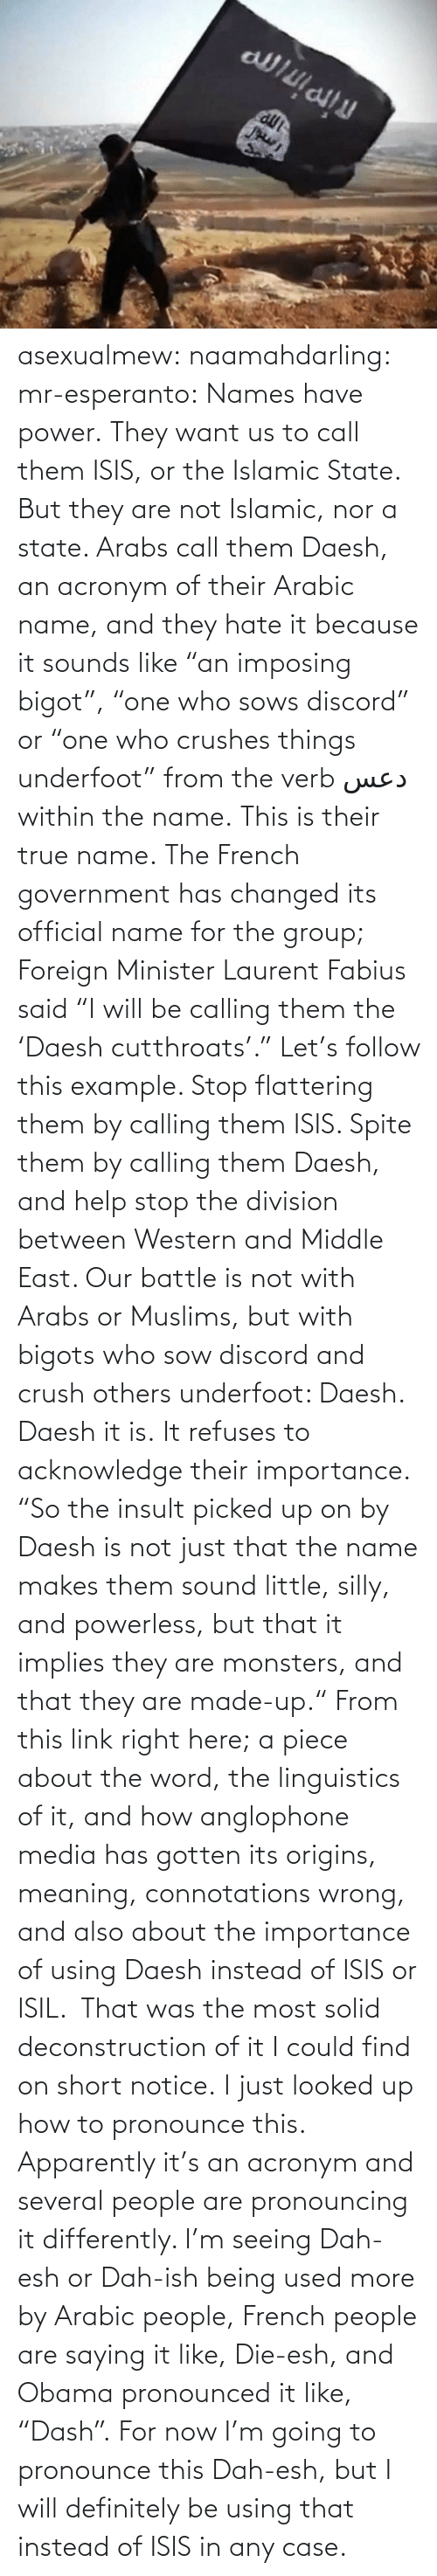 "Apparently, Crush, and Definitely: asexualmew:  naamahdarling:  mr-esperanto:  Names have power.  They want us to call them ISIS, or the Islamic State.  But they are not Islamic, nor a state. Arabs call them Daesh, an acronym of their Arabic name, and they hate it because it sounds like ""an imposing bigot"", ""one who sows discord"" or ""one who crushes things underfoot"" from the verb دعس within the name.  This is their true name.  The French government has changed its official name for the group; Foreign Minister Laurent Fabius said ""I will be calling them the 'Daesh cutthroats'.""  Let's follow this example. Stop flattering them by calling them ISIS.  Spite them by calling them Daesh, and help stop the division between Western and Middle East.  Our battle is not with Arabs or Muslims, but with bigots who sow discord and crush others underfoot: Daesh.  Daesh it is. It refuses to acknowledge their importance. ""So the insult picked up on by Daesh is not just that the name makes them sound little, silly, and powerless, but that it implies they are monsters, and that they are made-up."" From this link right here; a piece about the word, the linguistics of it, and how anglophone media has gotten its origins, meaning, connotations wrong, and also about the importance of using Daesh instead of ISIS or ISIL.  That was the most solid deconstruction of it I could find on short notice.  I just looked up how to pronounce this. Apparently it's an acronym and several people are pronouncing it differently.  I'm seeing Dah-esh or Dah-ish being used more by Arabic people, French people are saying it like, Die-esh, and Obama pronounced it like, ""Dash"". For now I'm going to pronounce this Dah-esh, but I will definitely be using that instead of ISIS in any case."